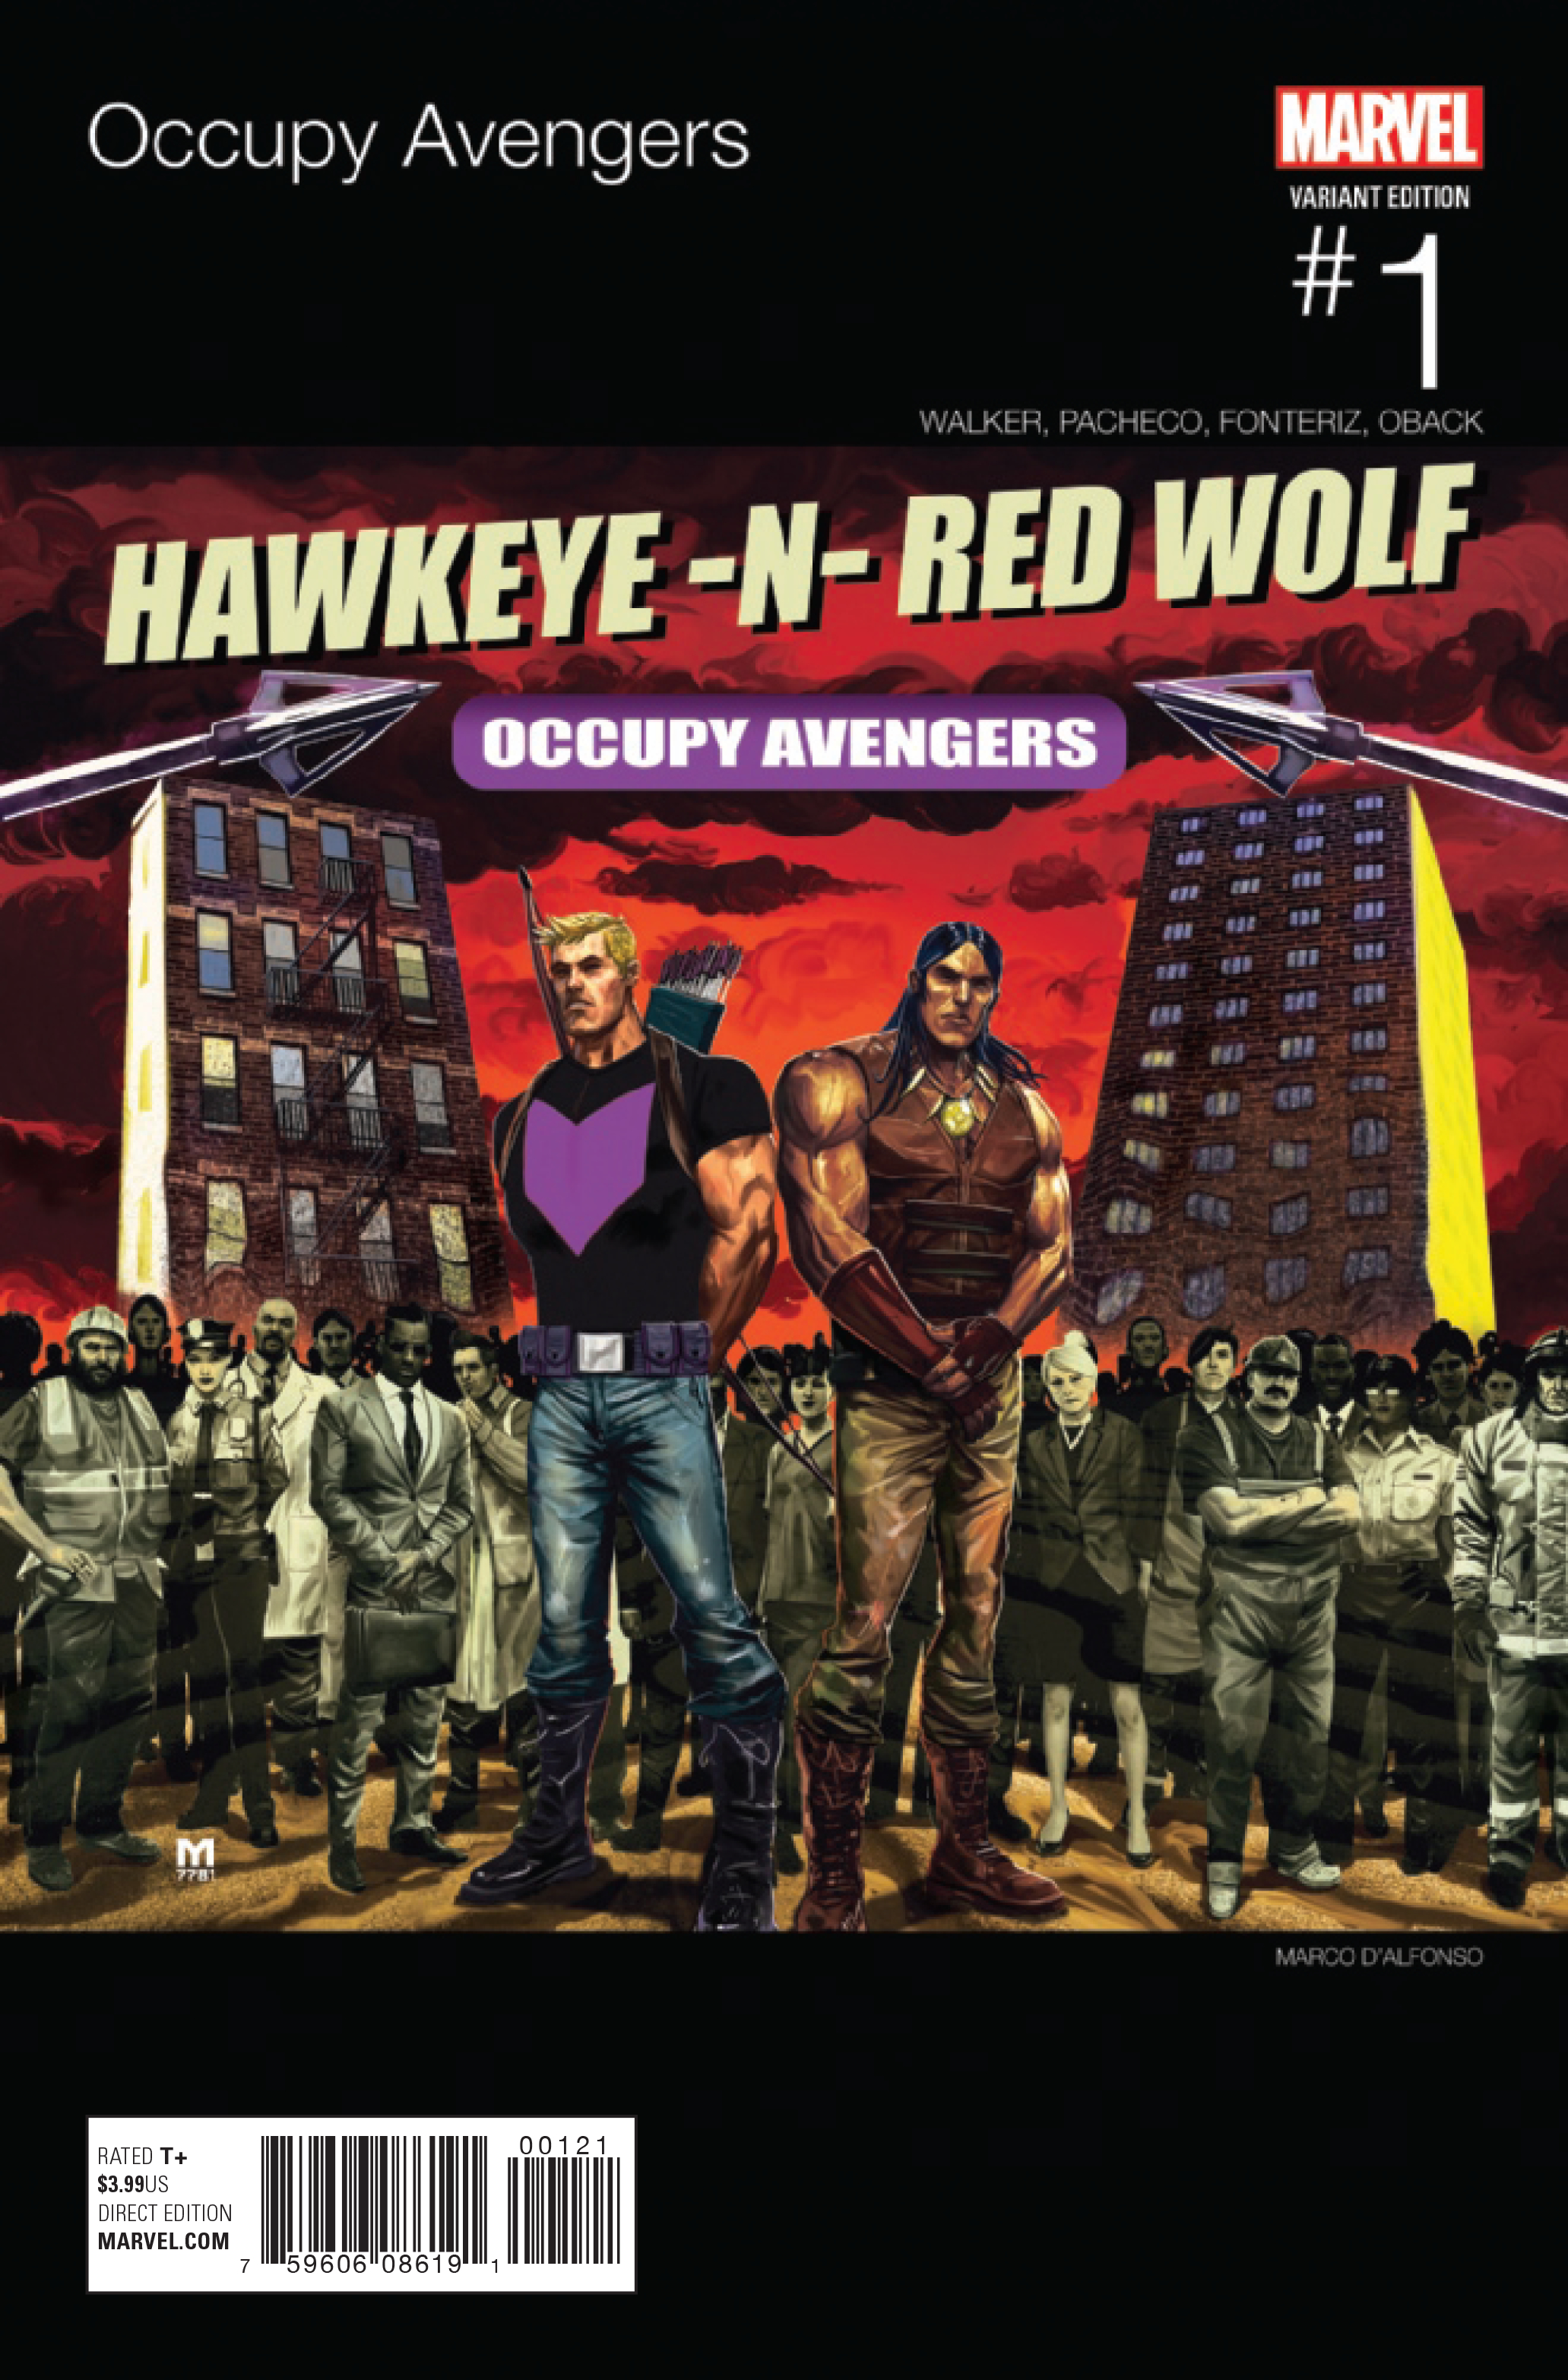 OCCUPY AVENGERS #1 DALFONSO HIP HOP VAR NOW